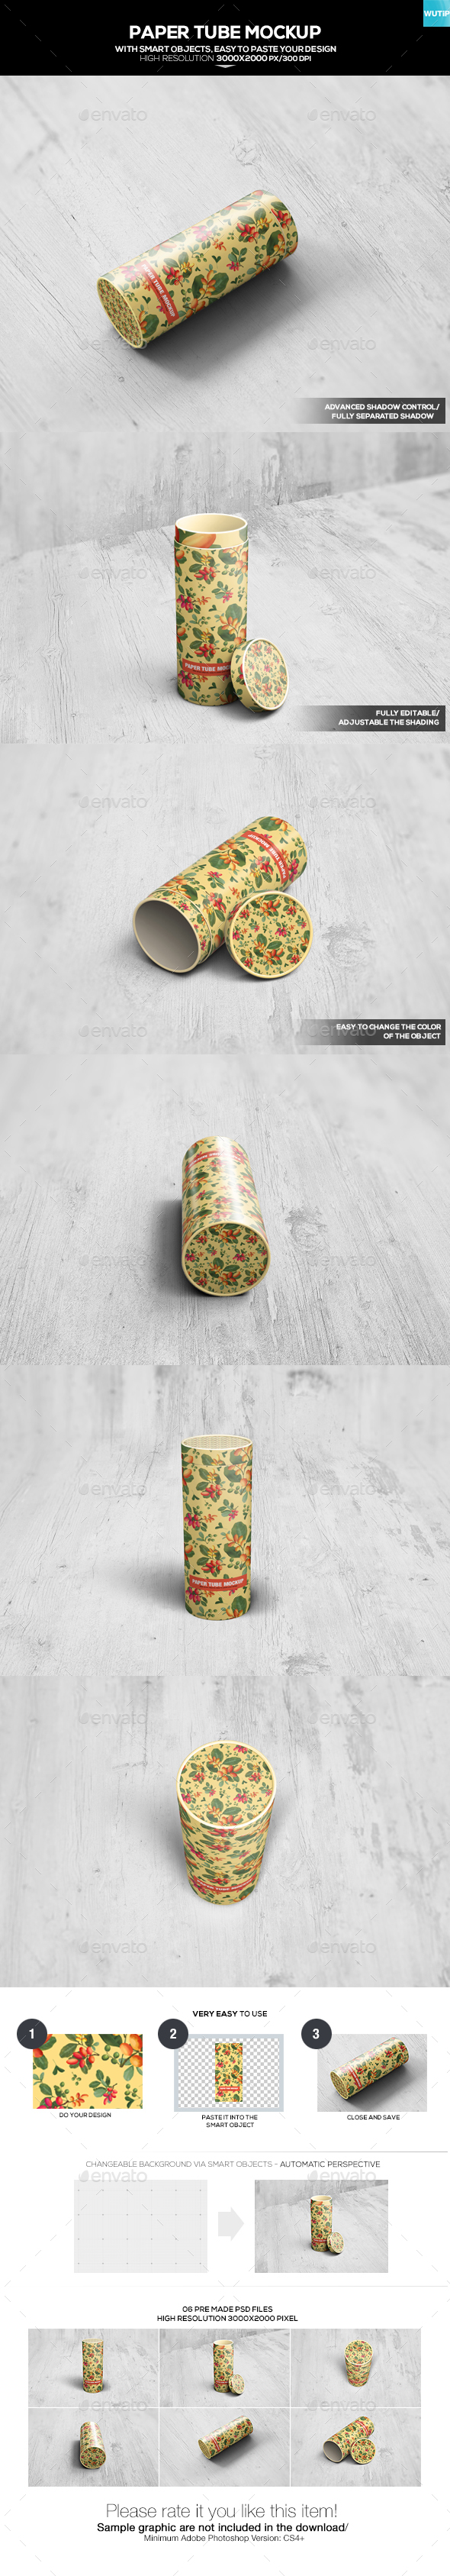 Paper Tube Mockup - Food and Drink Packaging